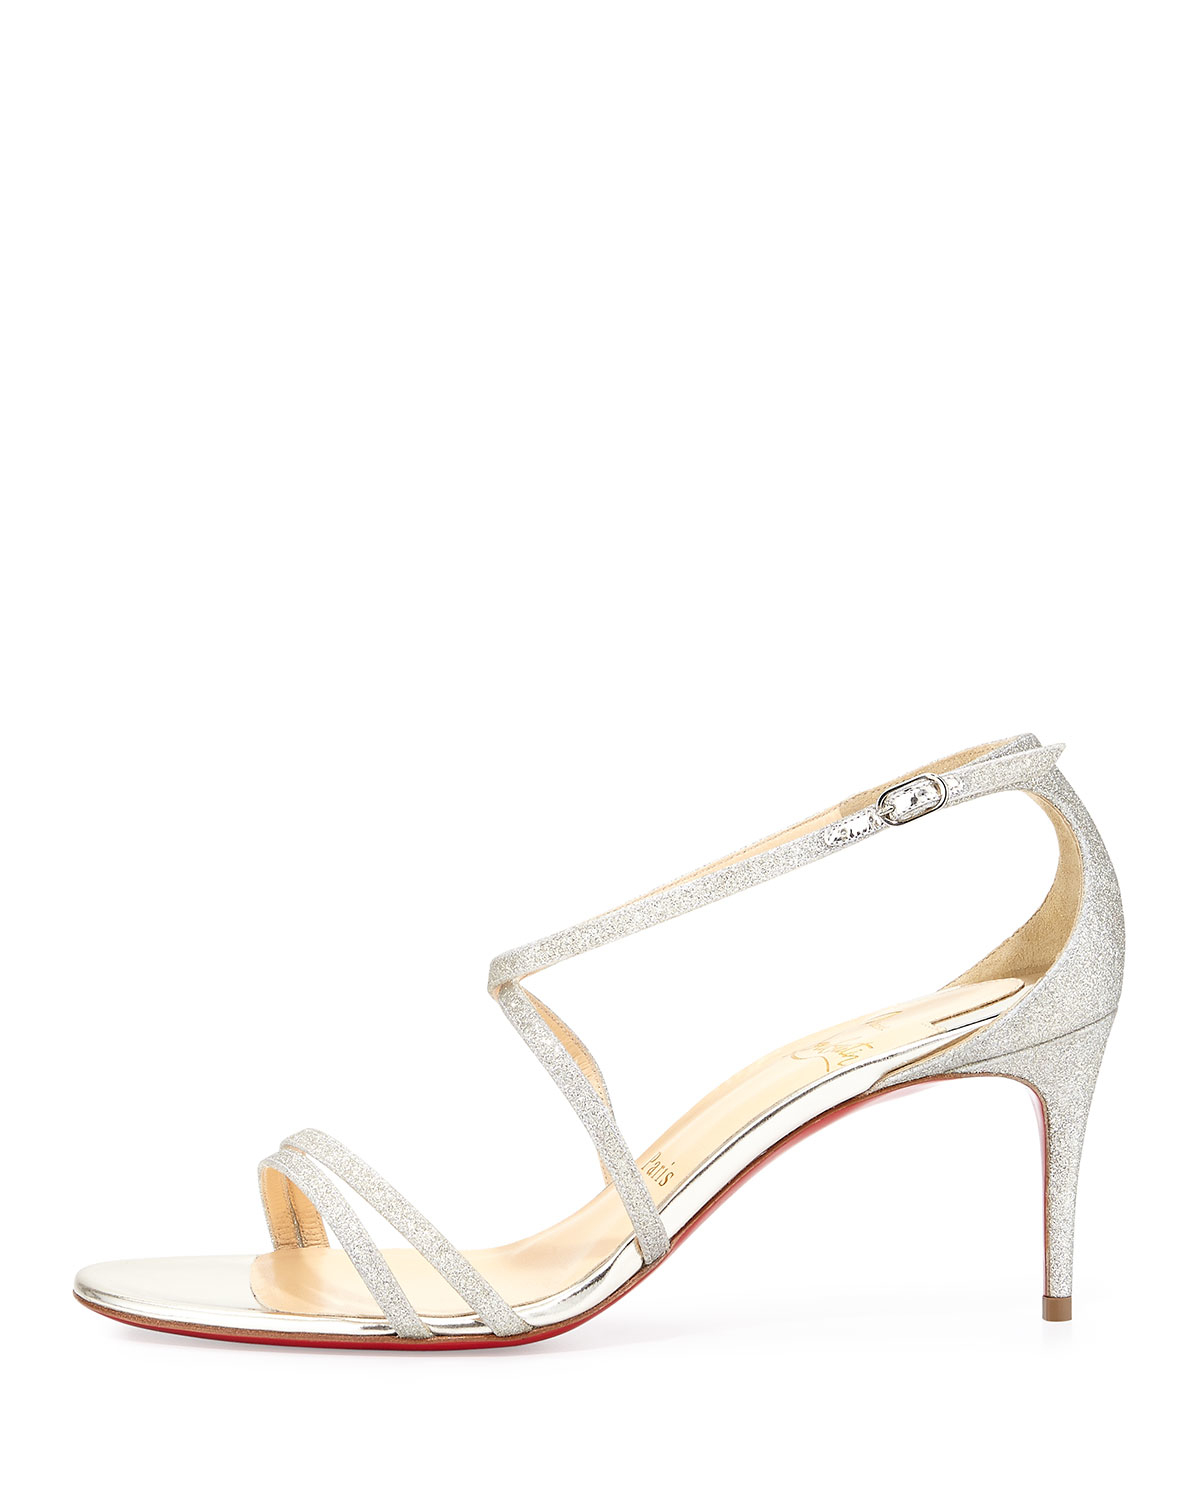 christian louboutin strappy glitter leather sandals